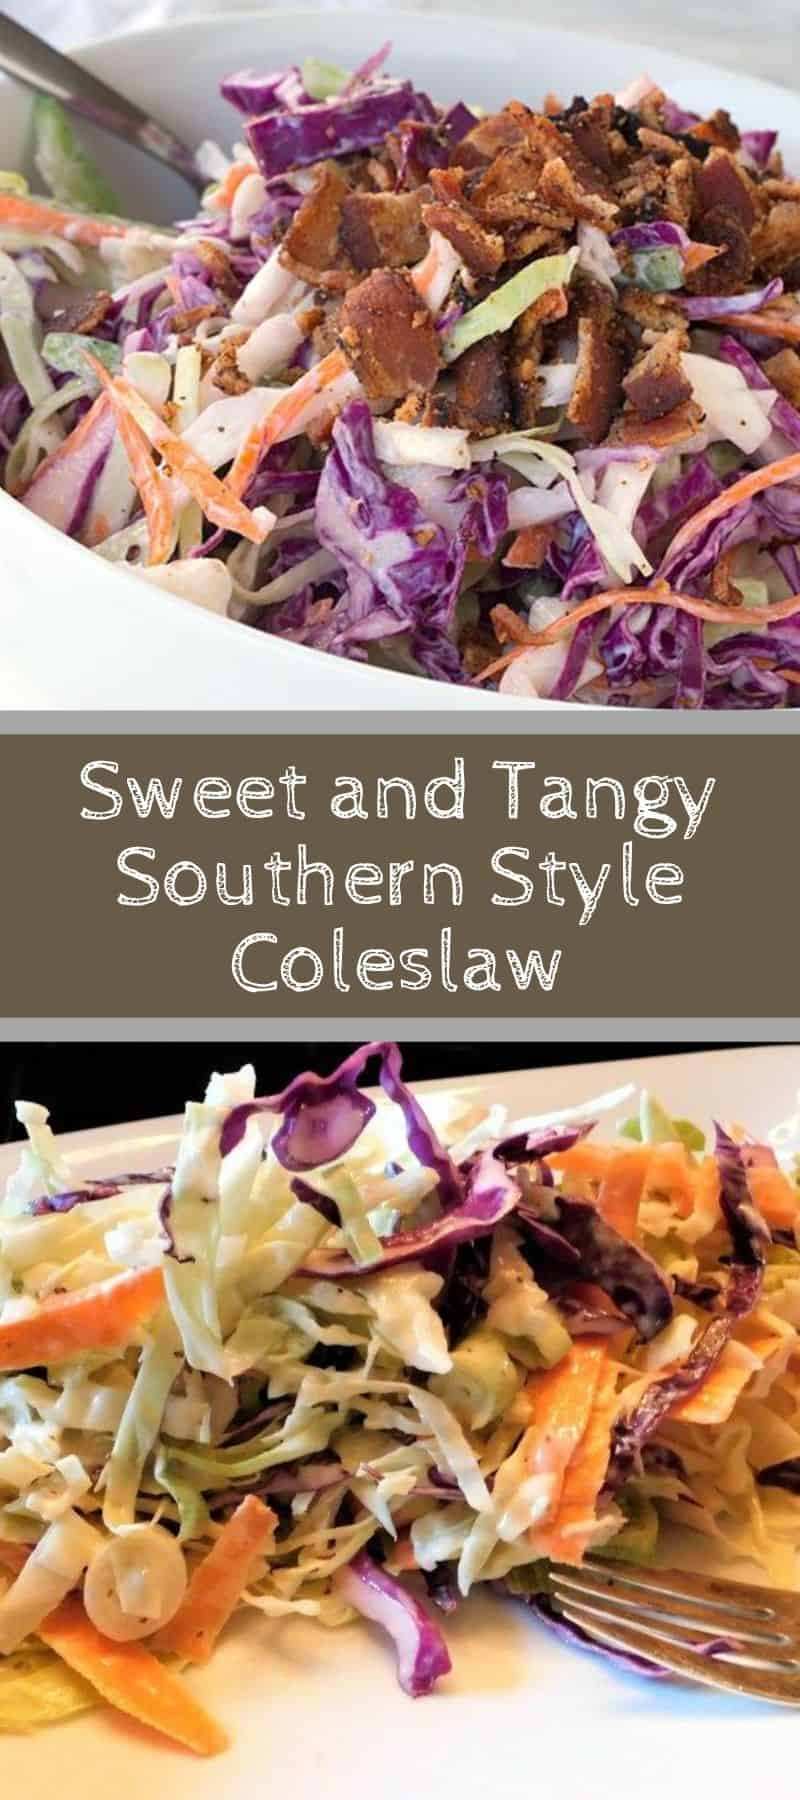 Sweet and Tangy Southern Style Coleslaw